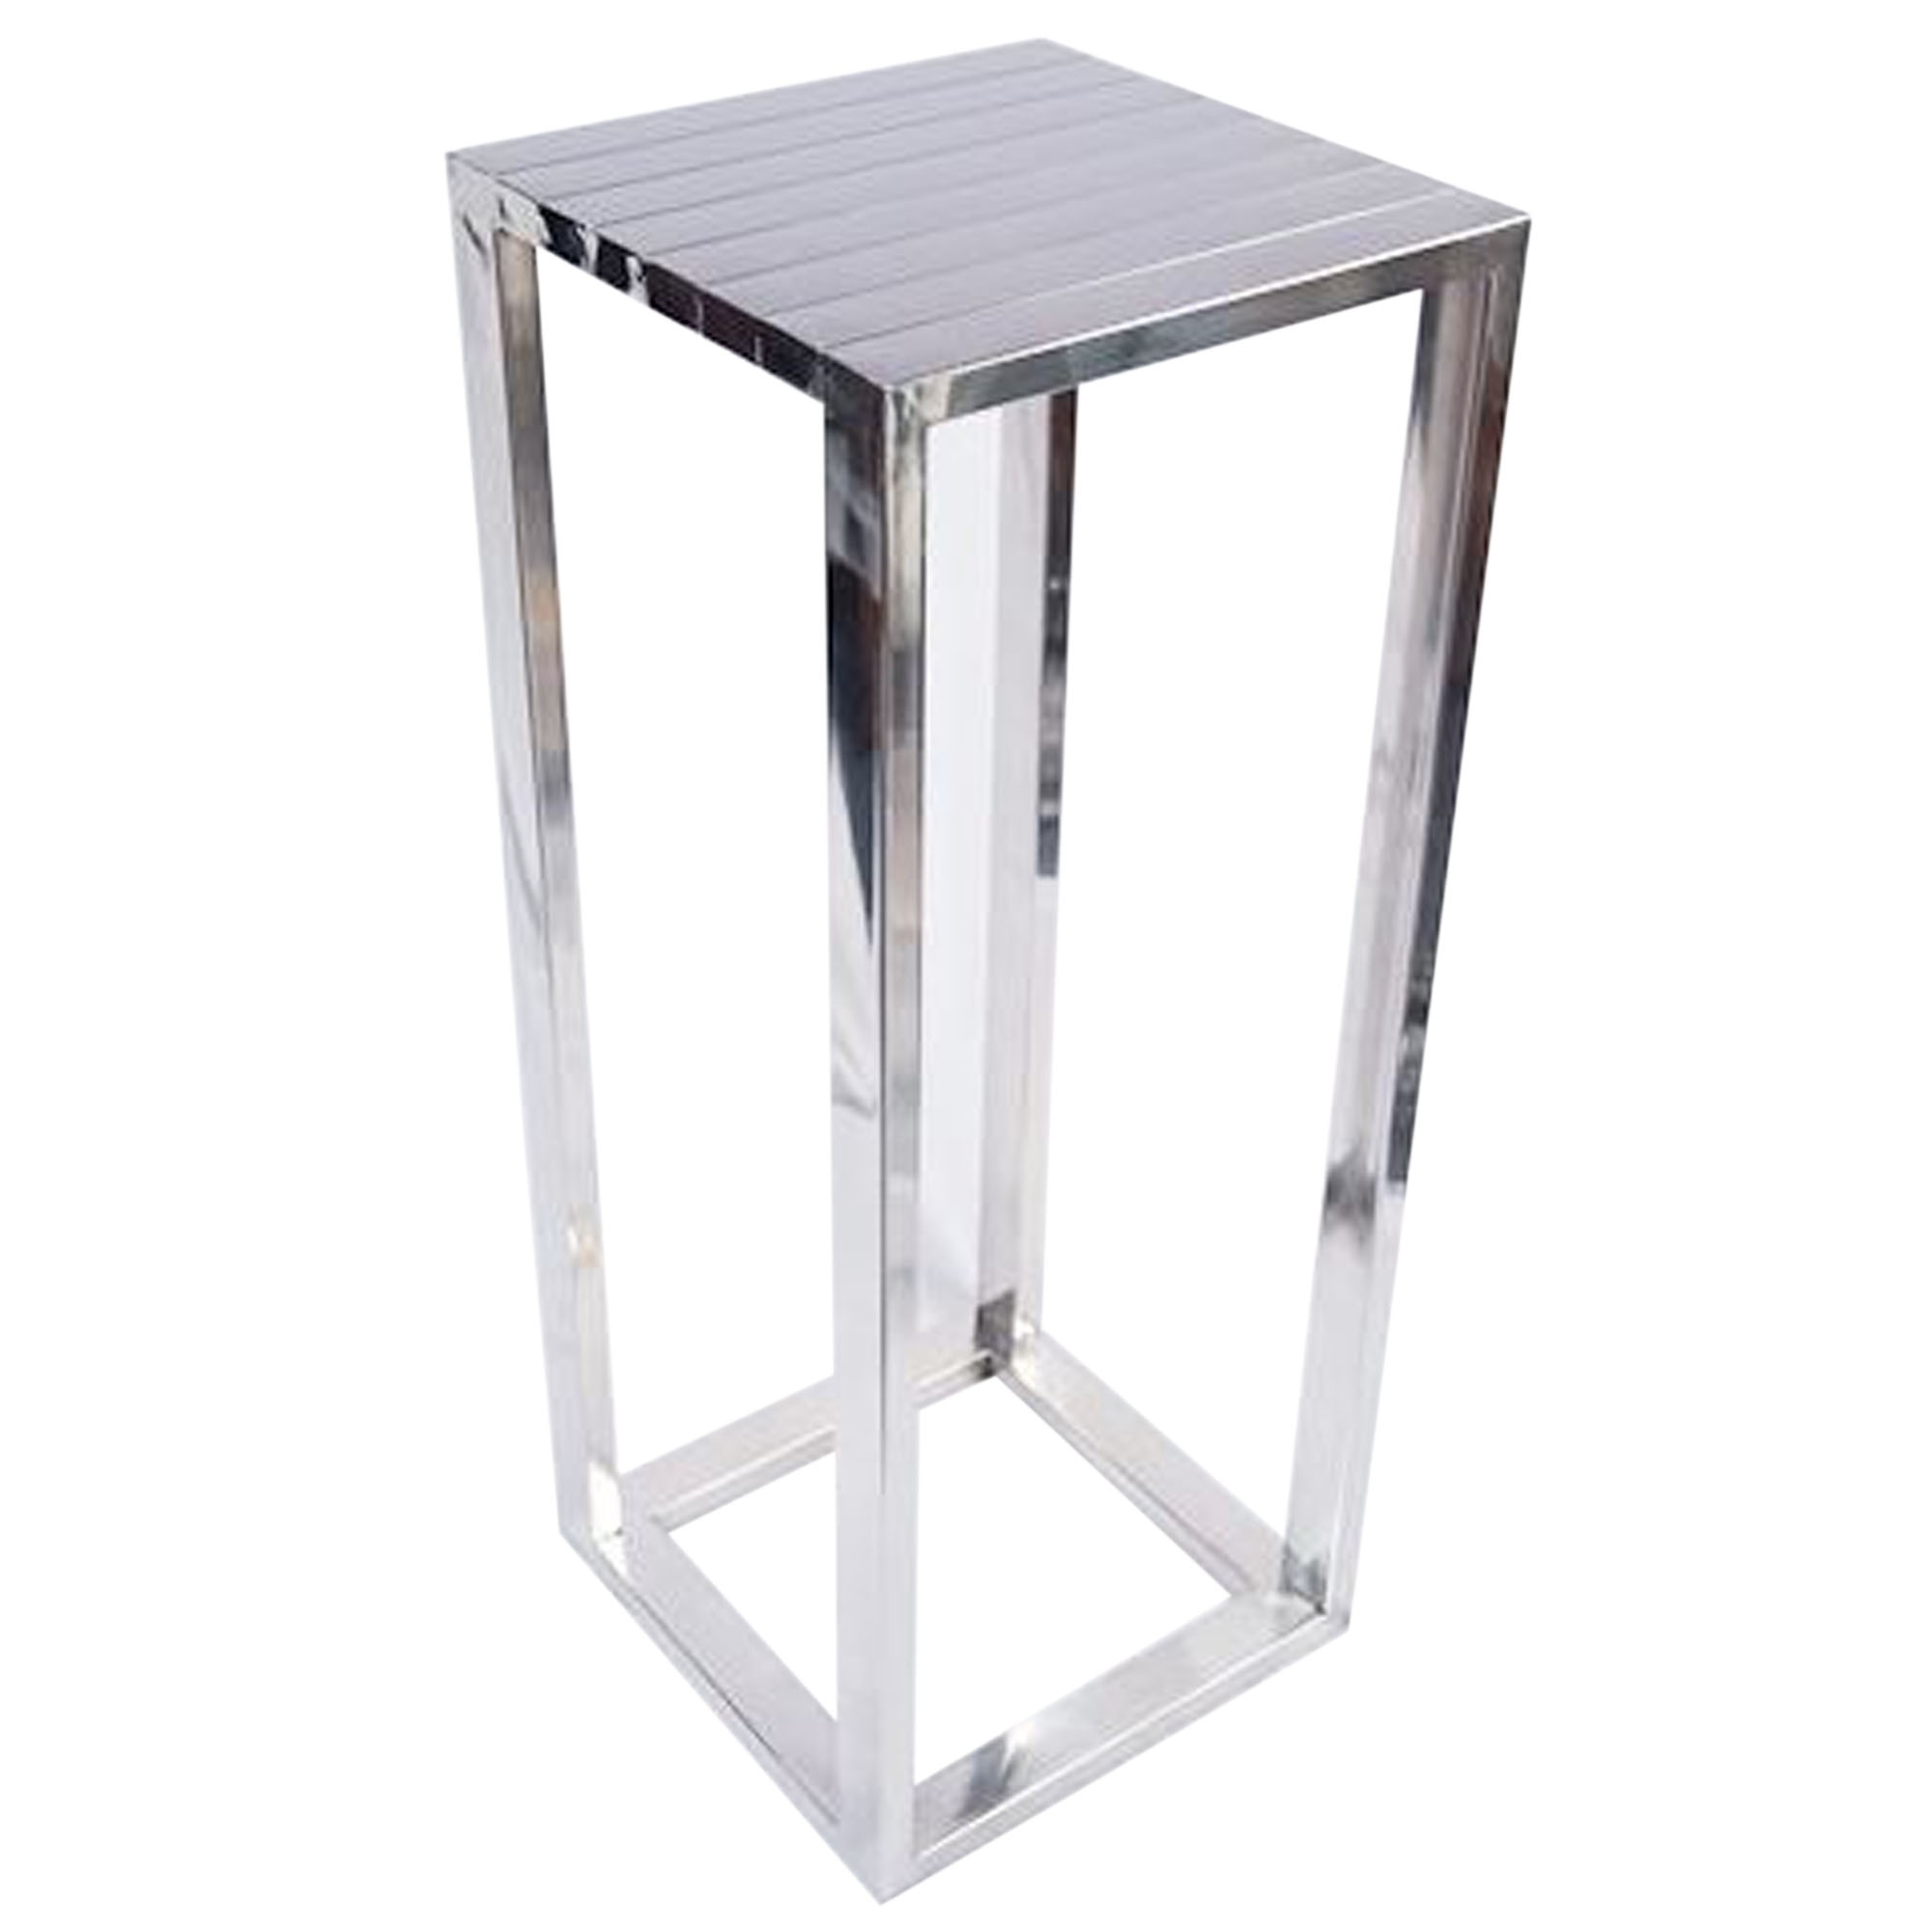 Tall steel silver plant stand